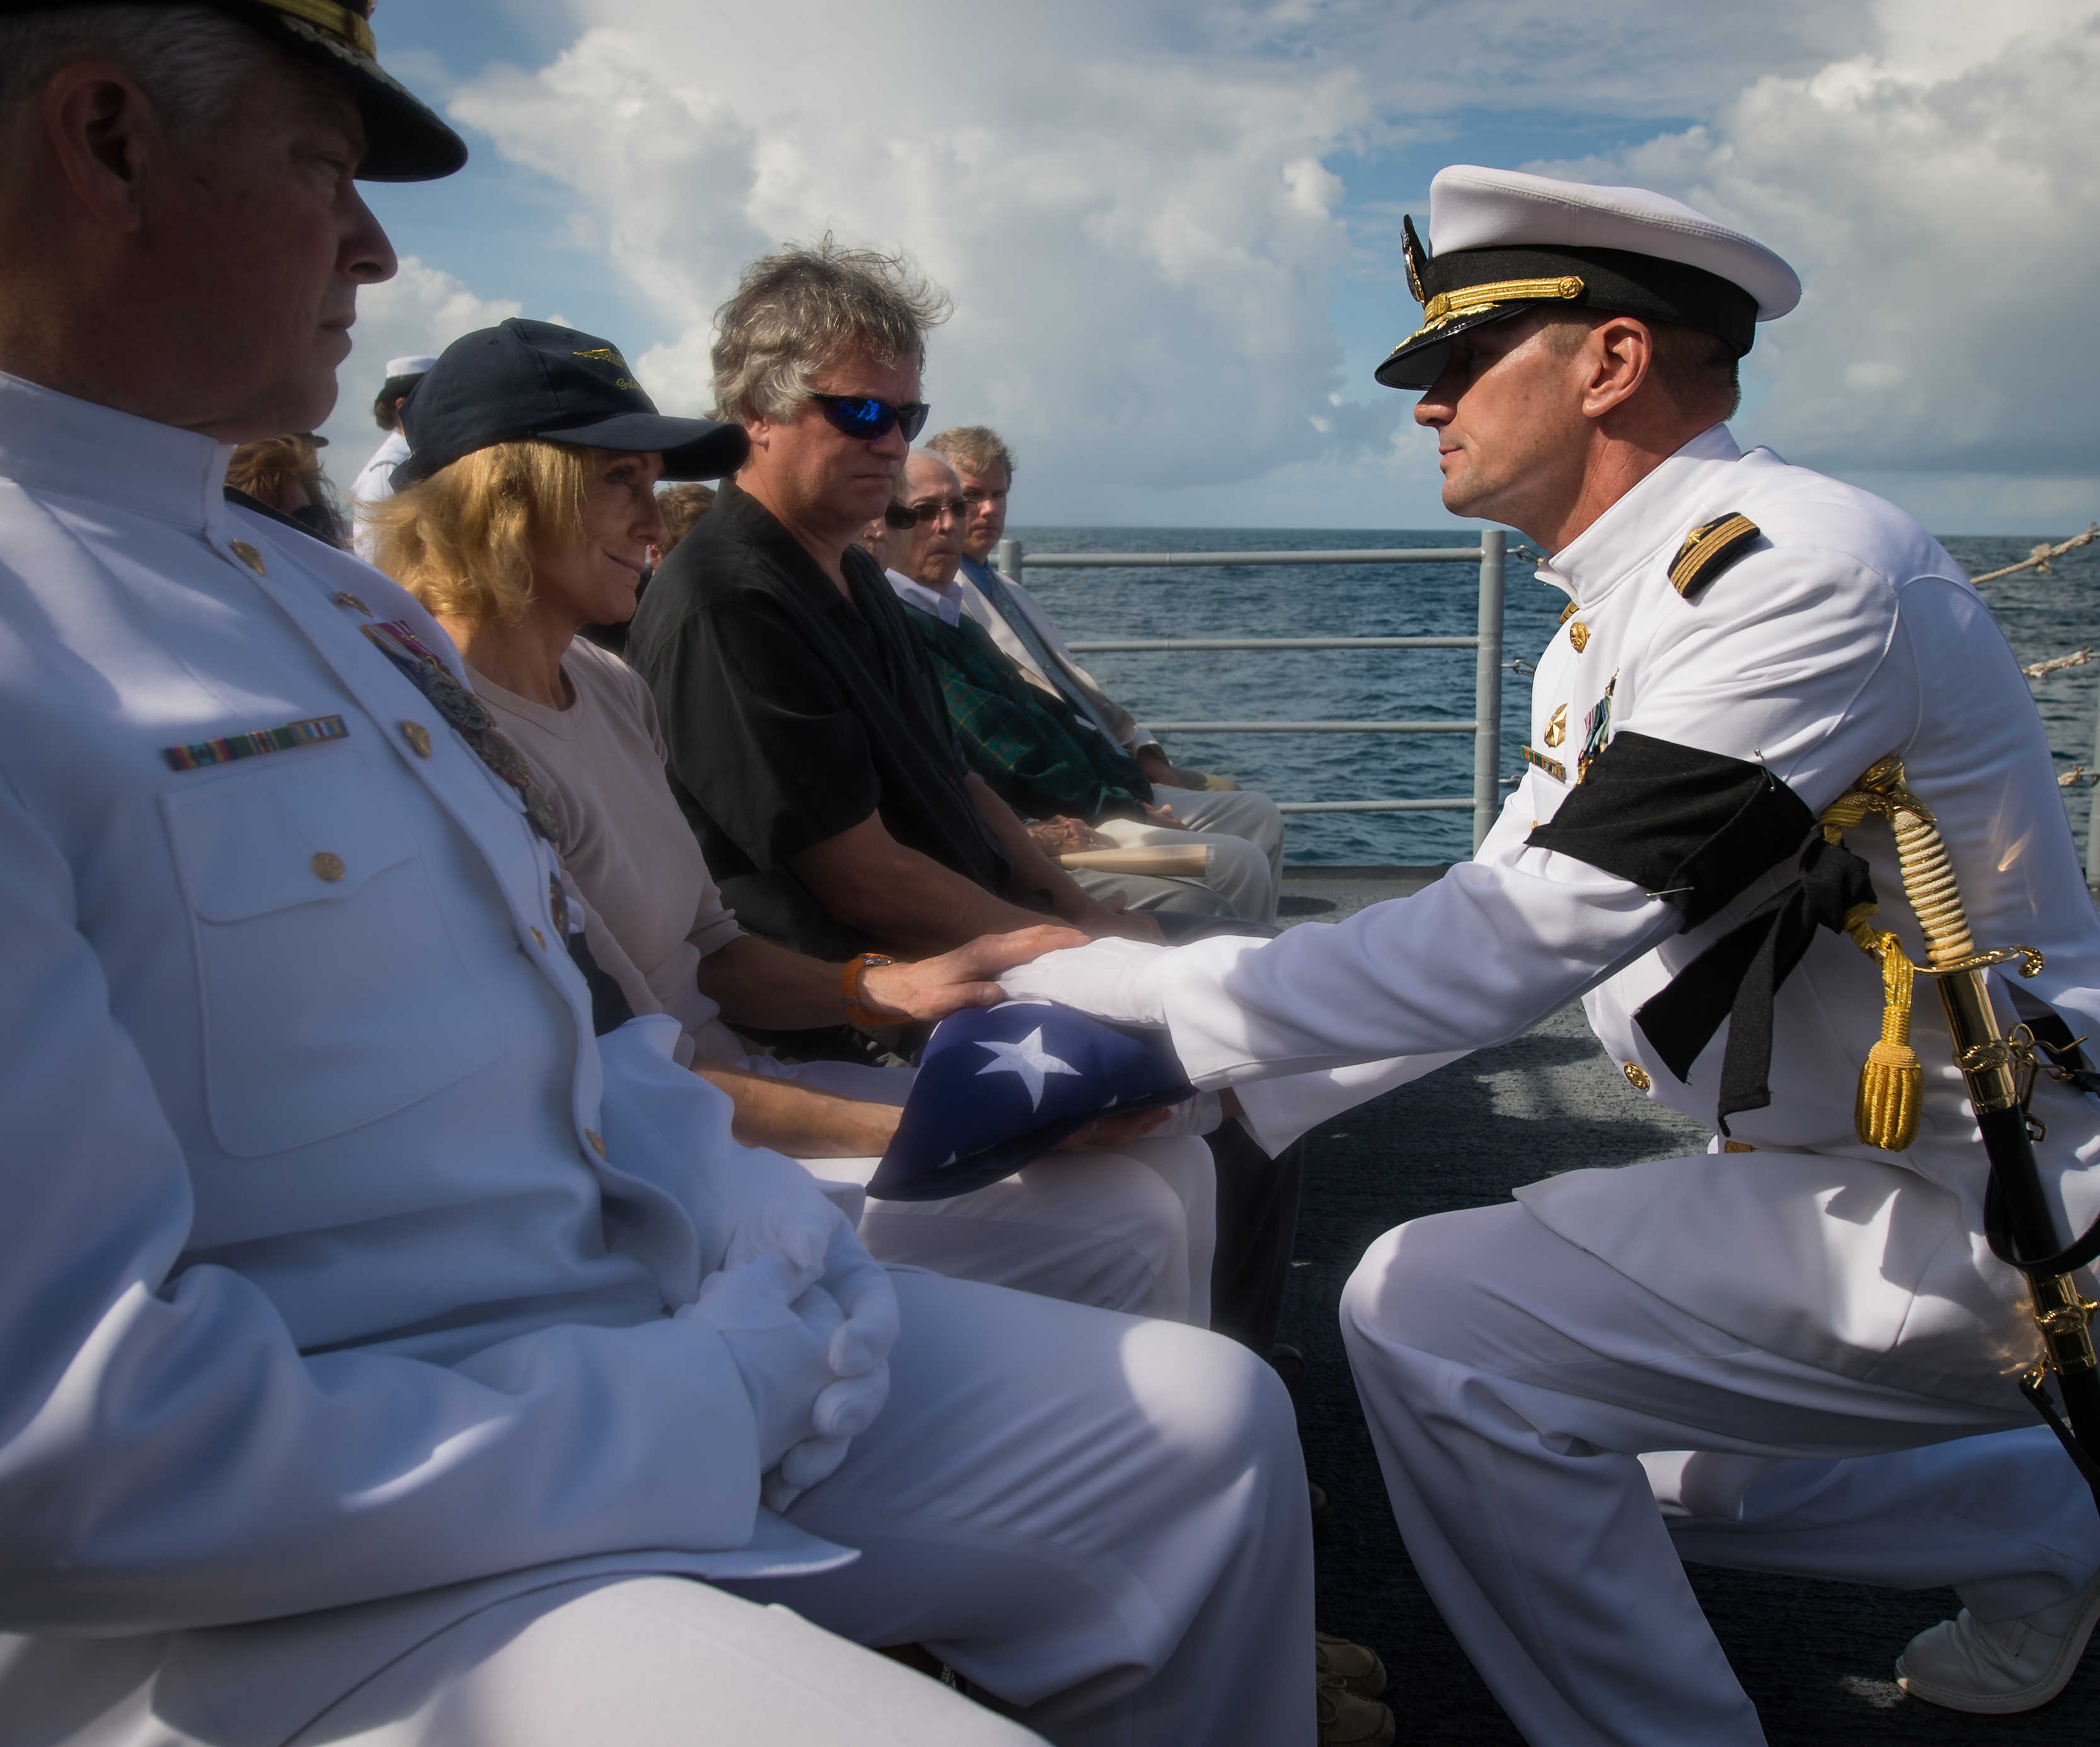 neil armstrong burial - photo #15